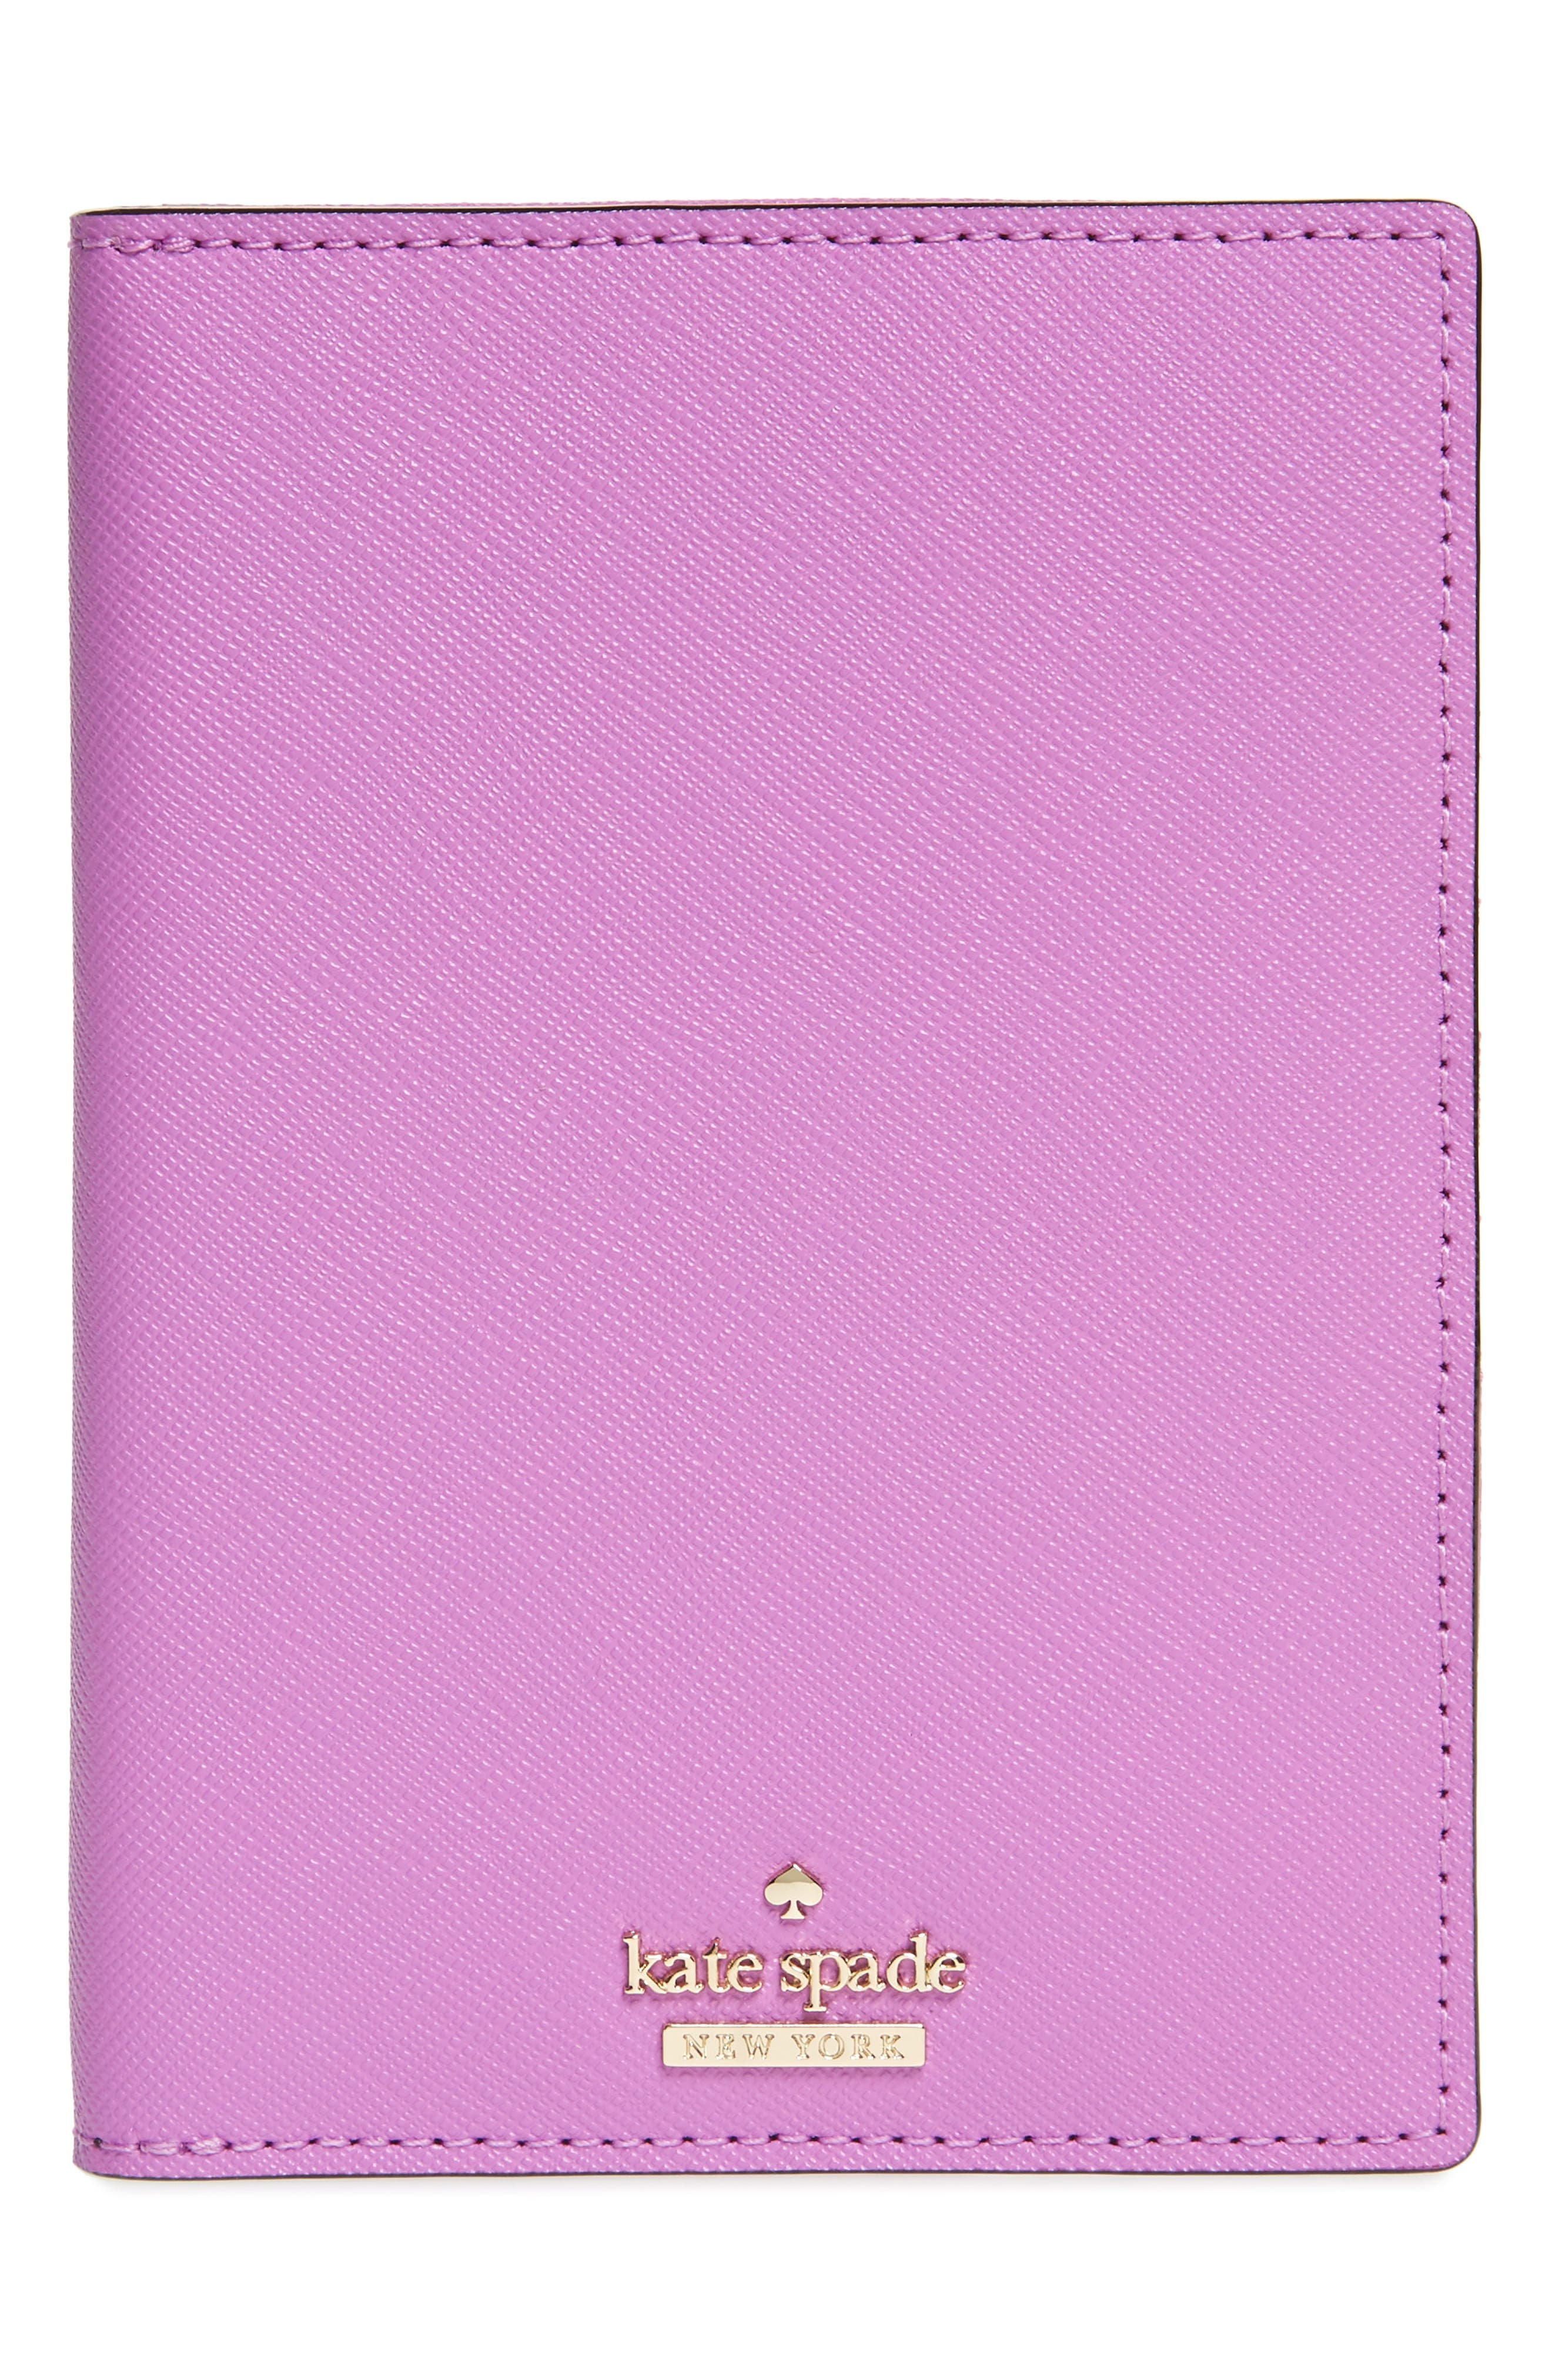 KATE SPADE NEW YORK 'cameron street' leather passport